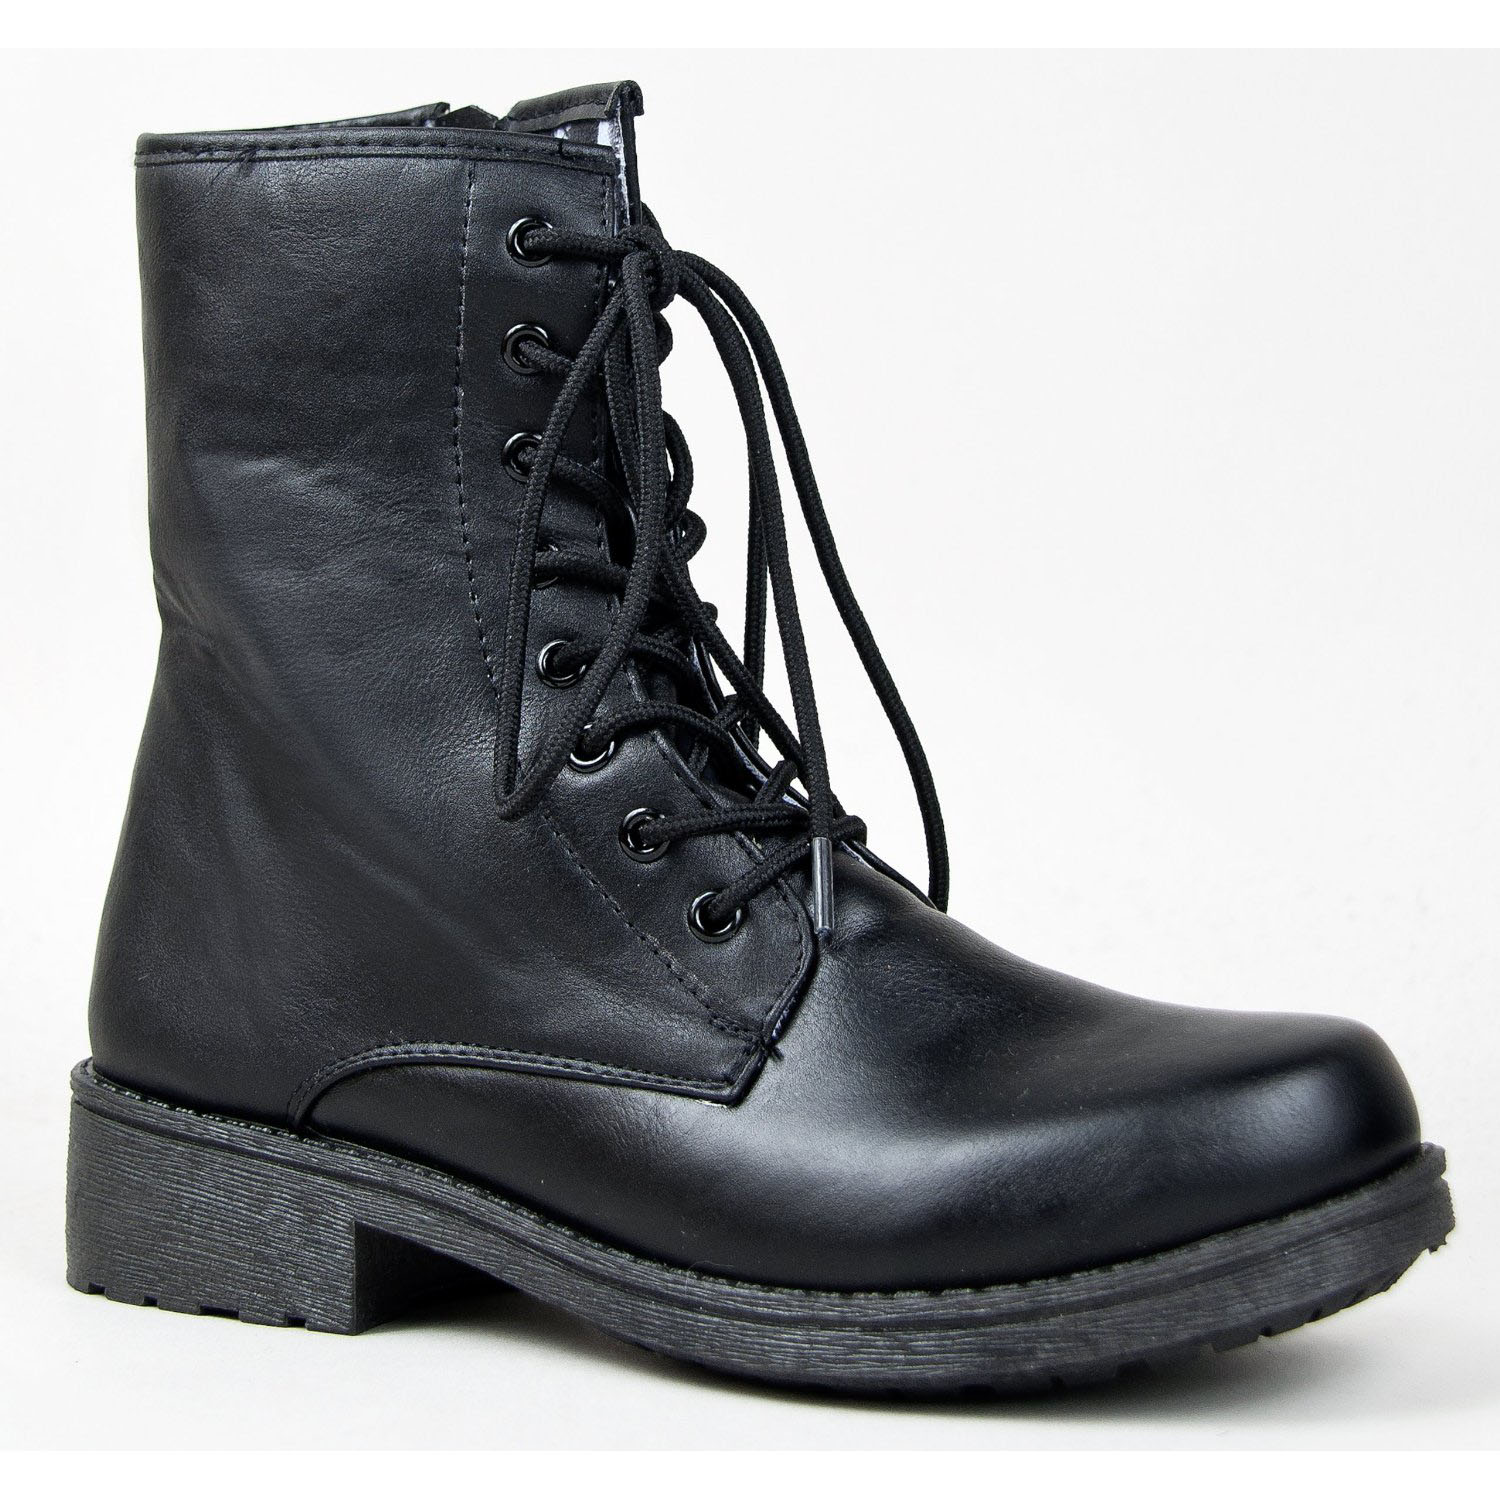 Women's Qupid Missile-04 Low Height Lace Up Combat Boot/Bootie